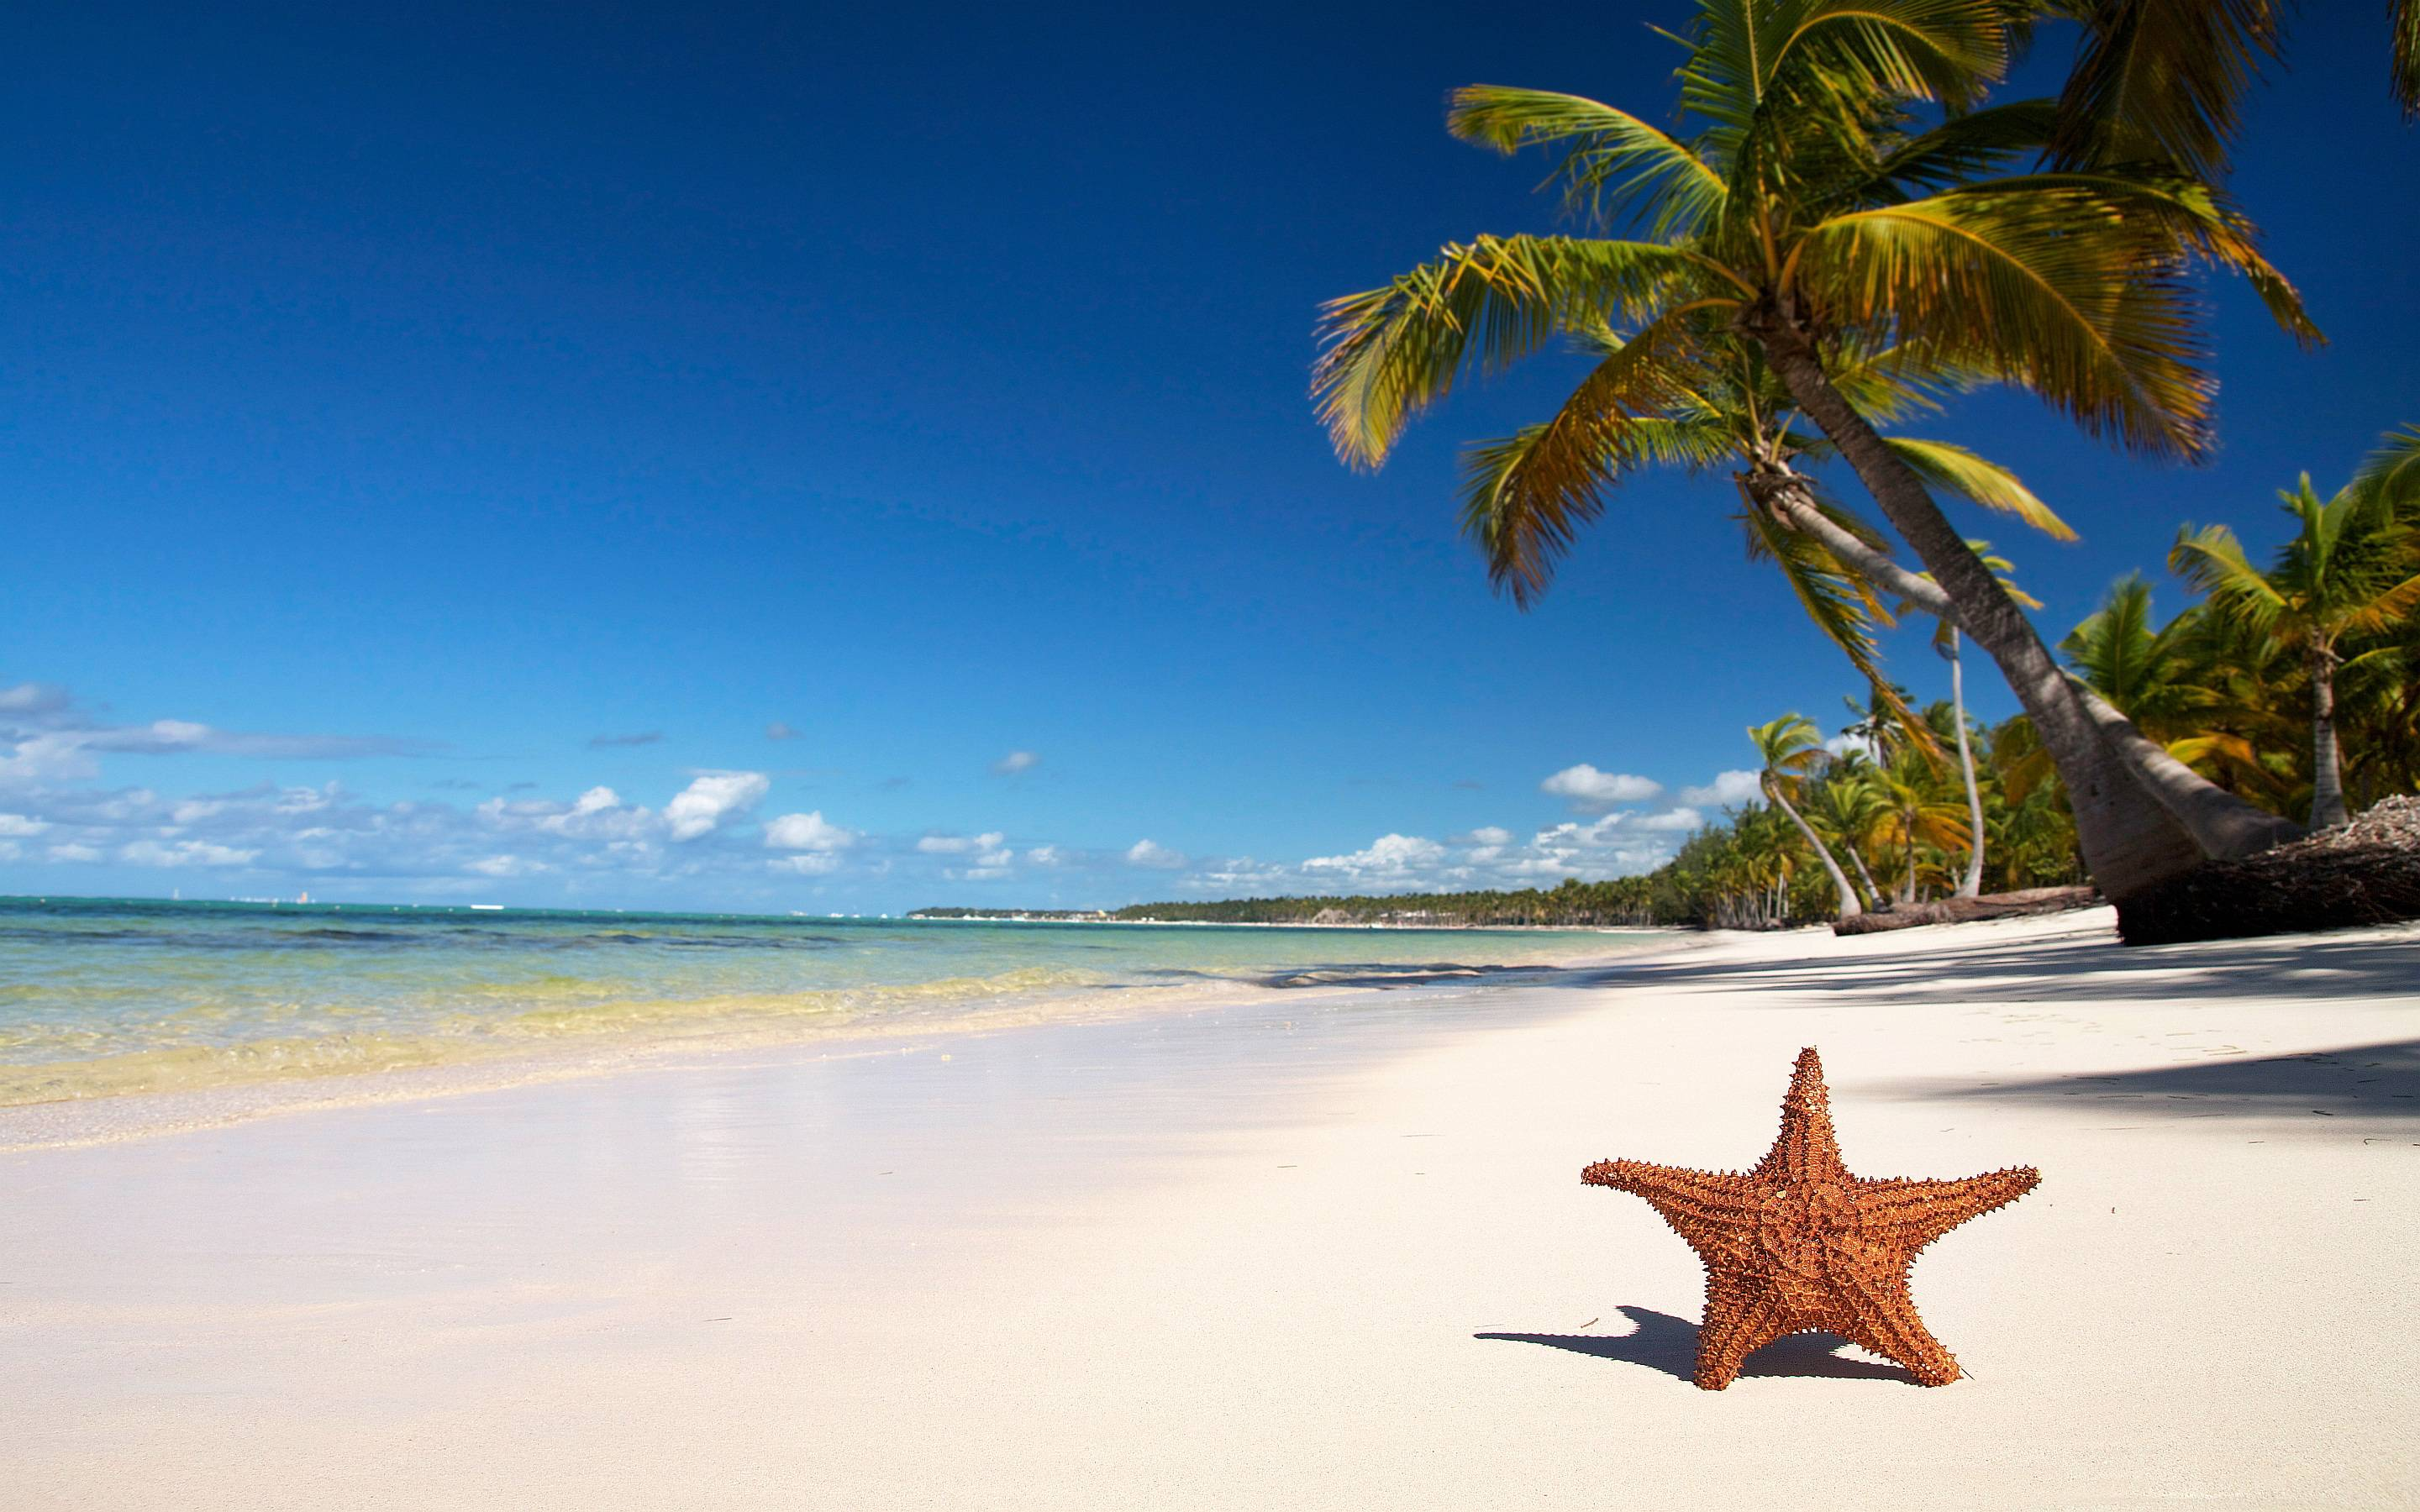 Tropical Beach Pictures Wallpapers 2880x1800